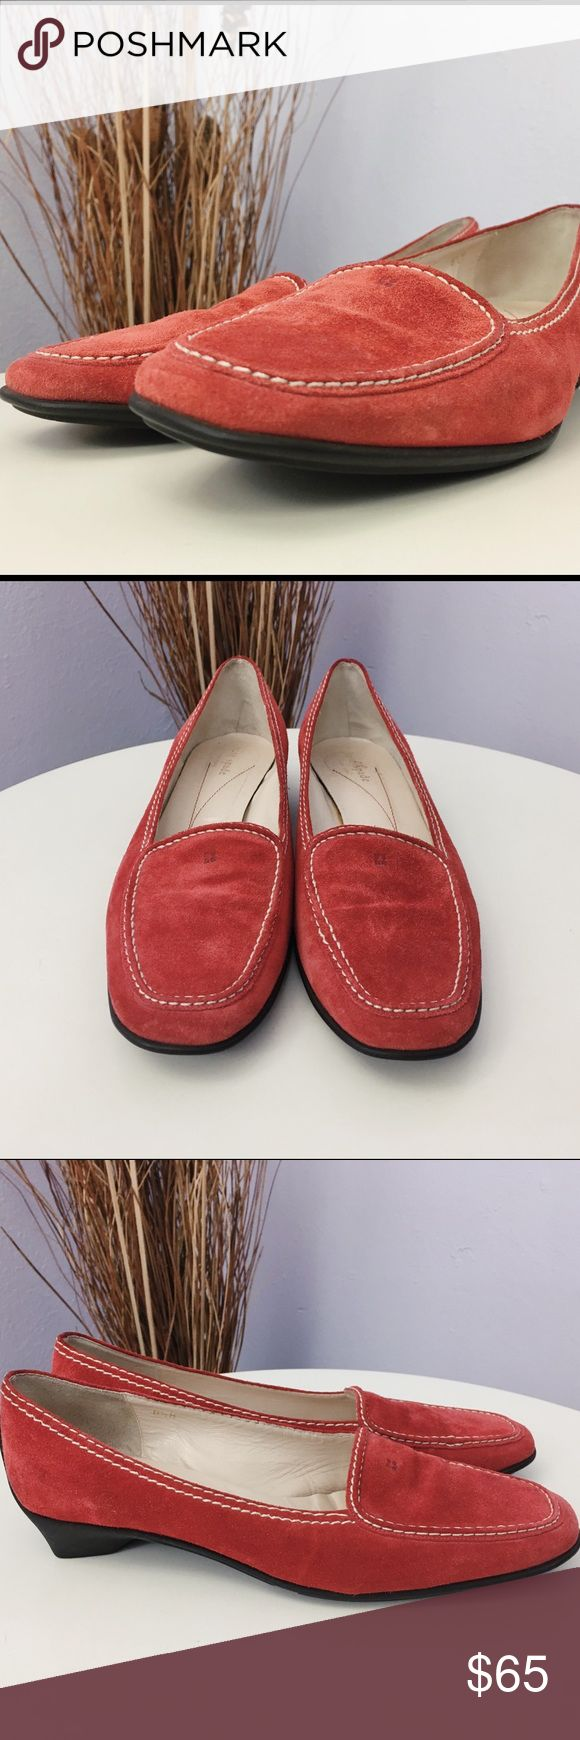 """Kate Spade """"Myra""""  Suede Loafers Shoes Sz 81/2 M The only flaw is due to the label sticker peeled off on the imprint """"Kate Spade"""" bottom inner (refer to picture).  It does NOT have original box. Will be mailed with or without a shoes box.   Red suede uppers with black rubber soles.  Retail $215 kate spade Shoes Flats & Loafers"""